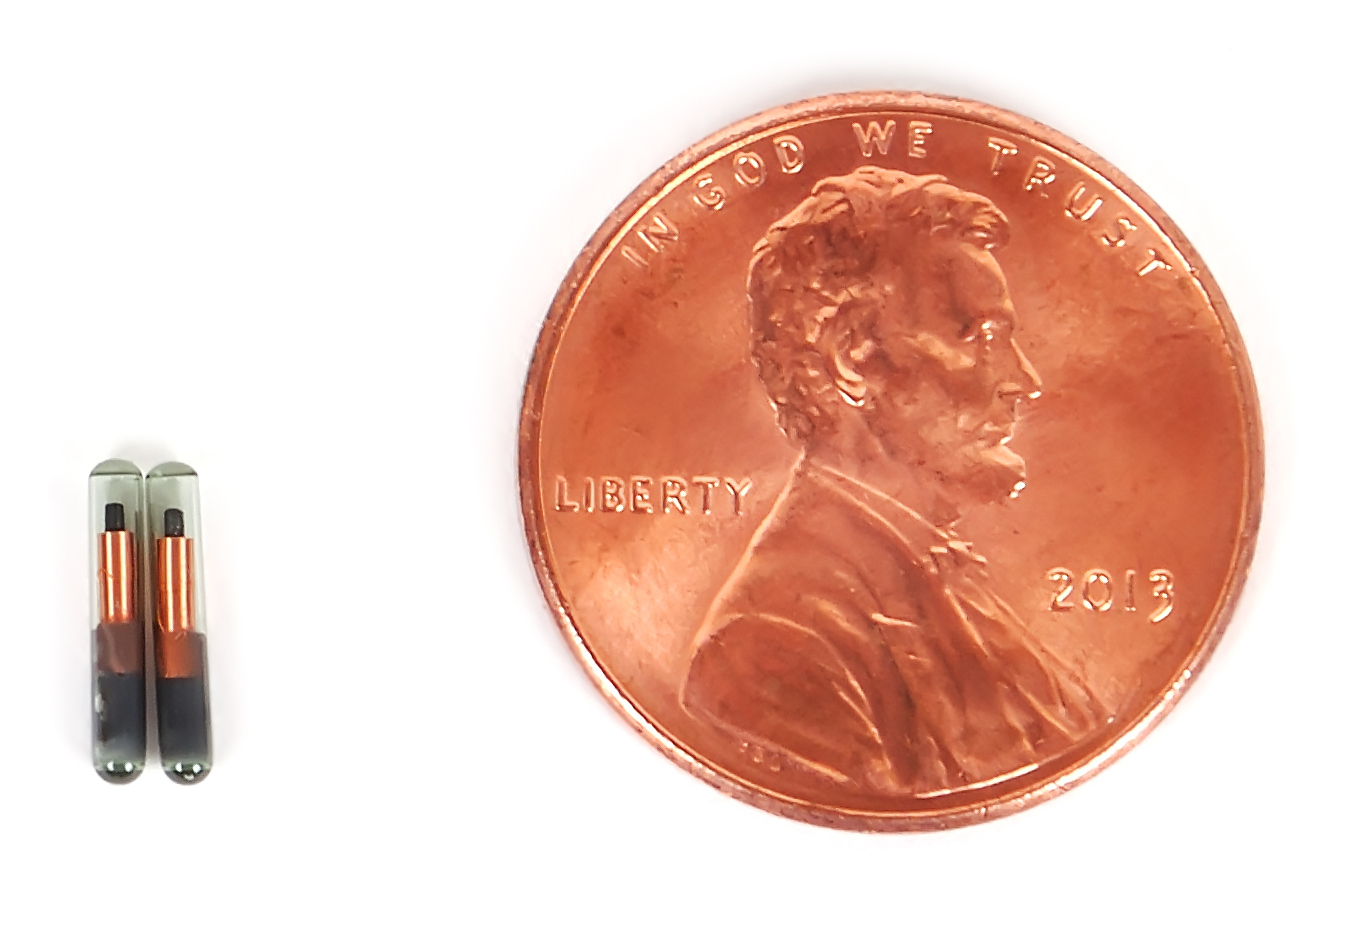 microchip size compared to a penny